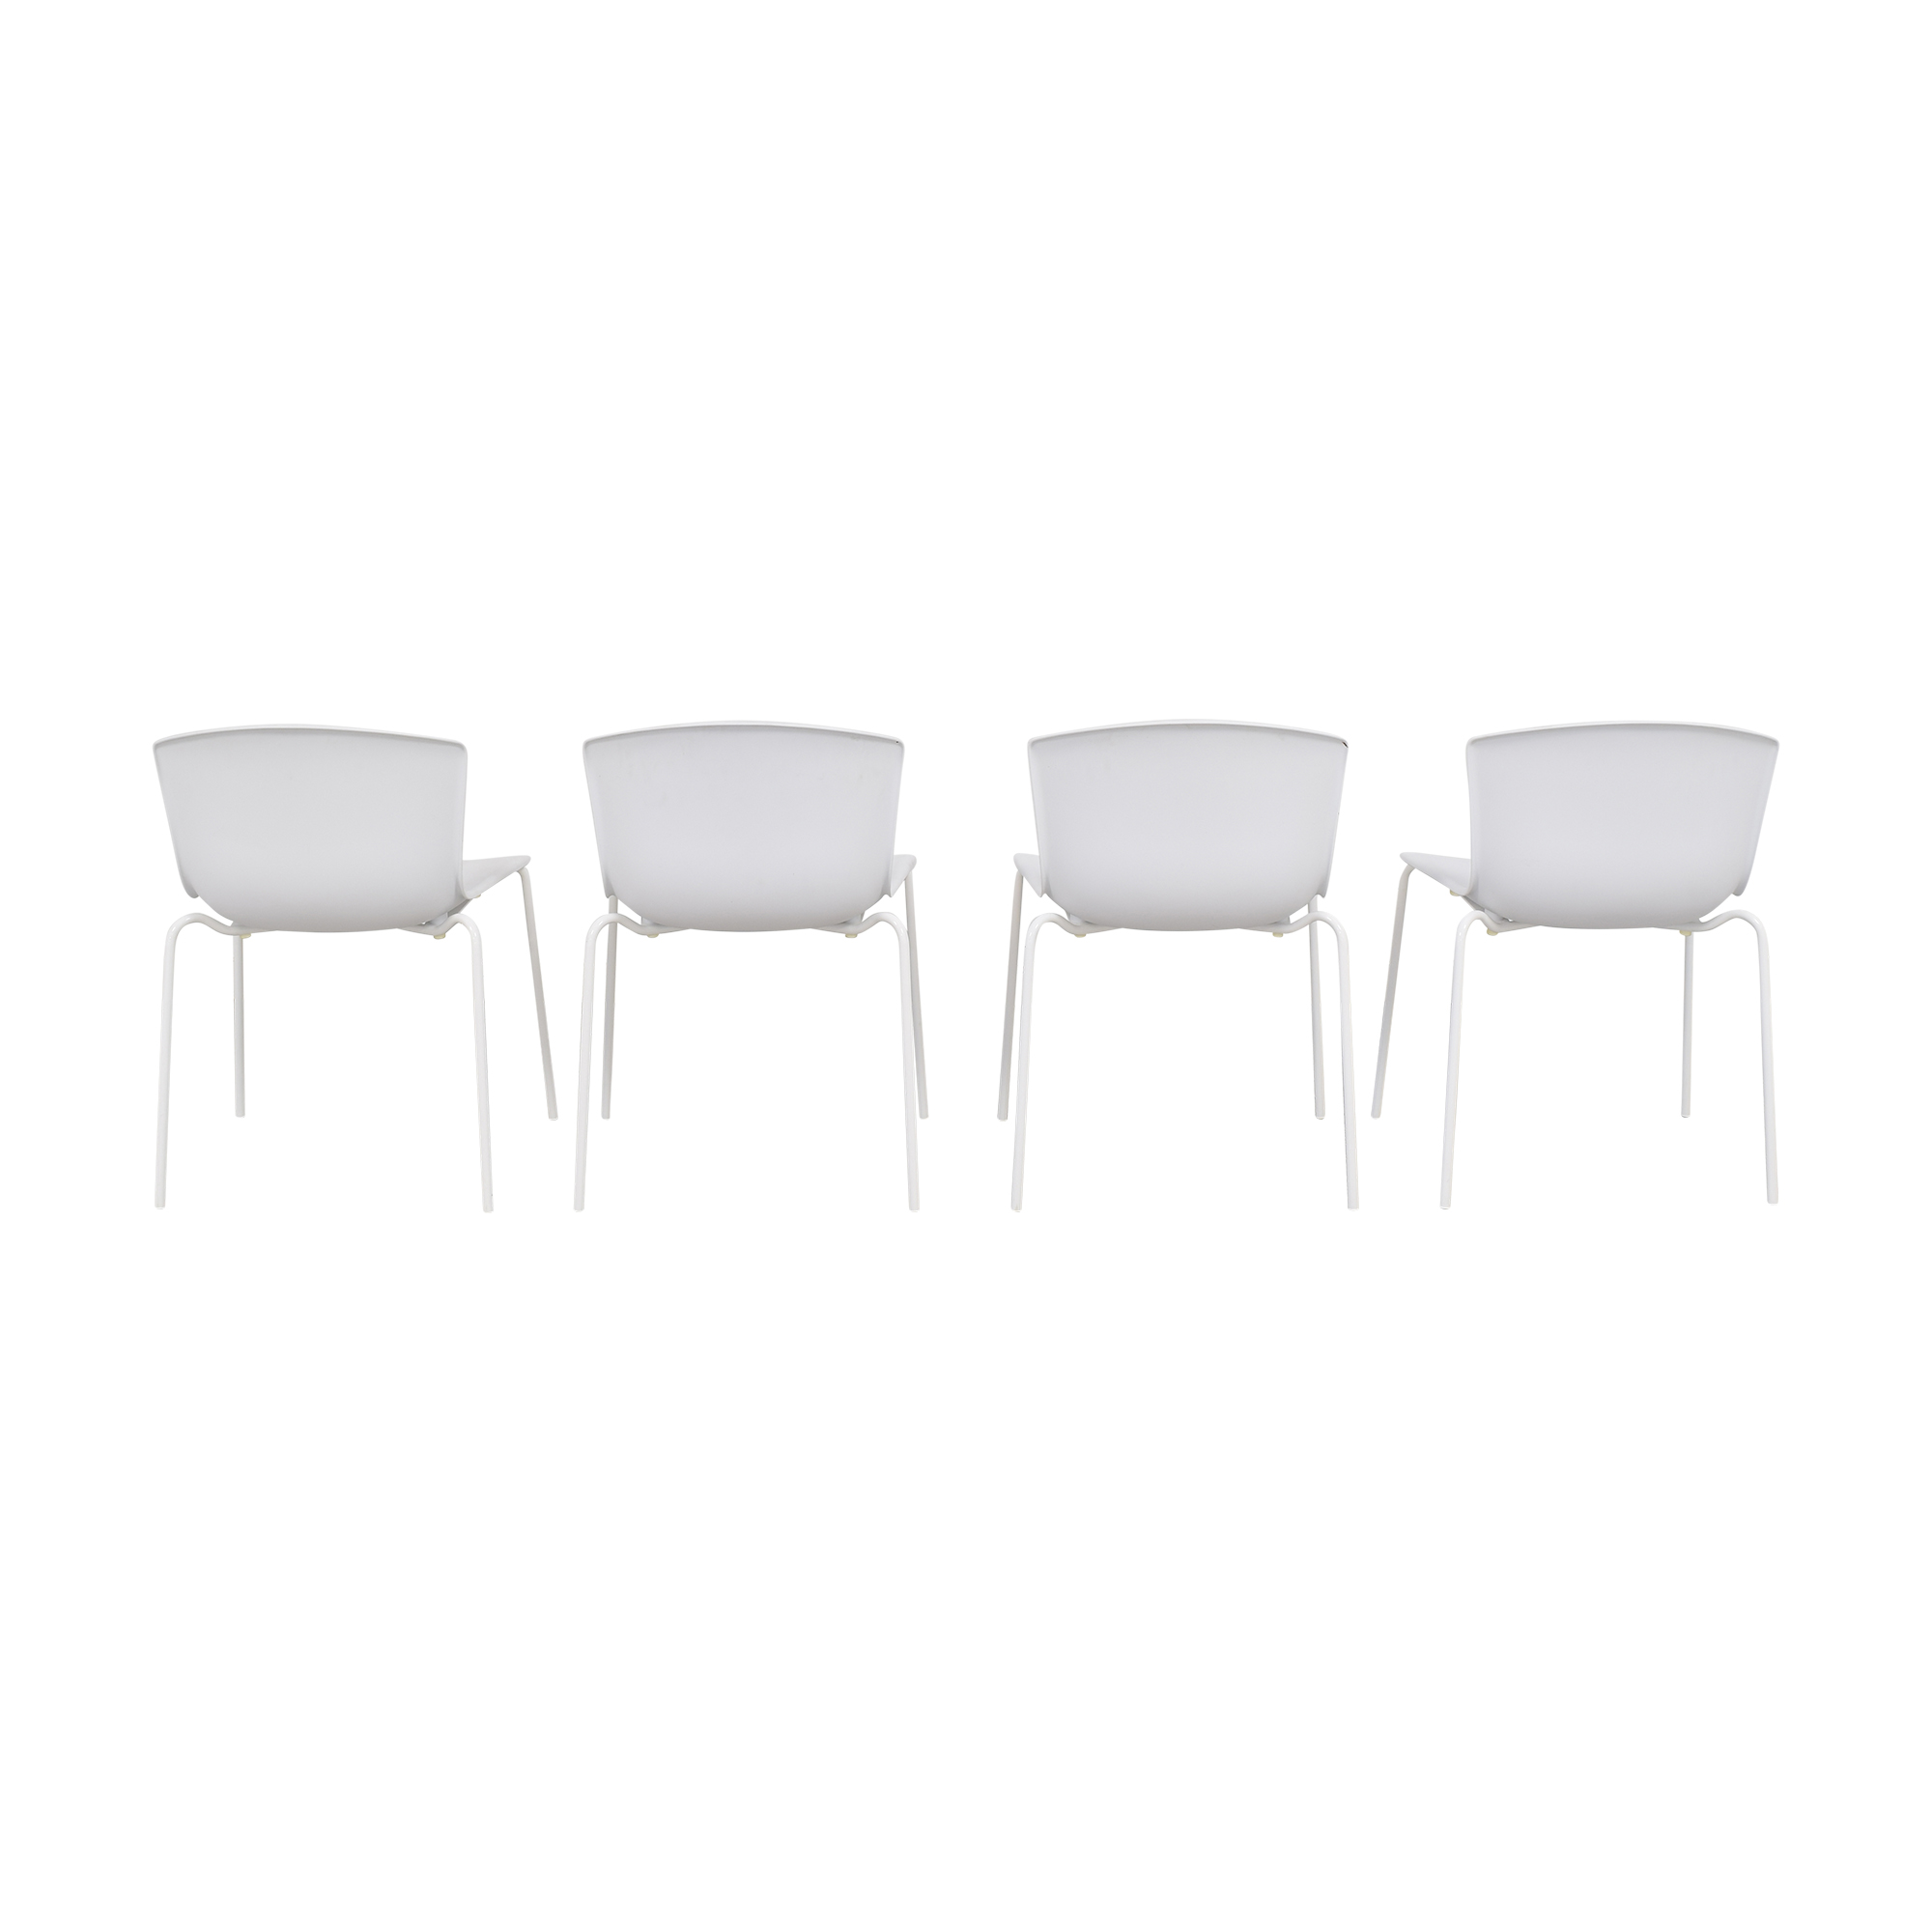 Knoll Bertoia Molded Shell Side Chair / Dining Chairs